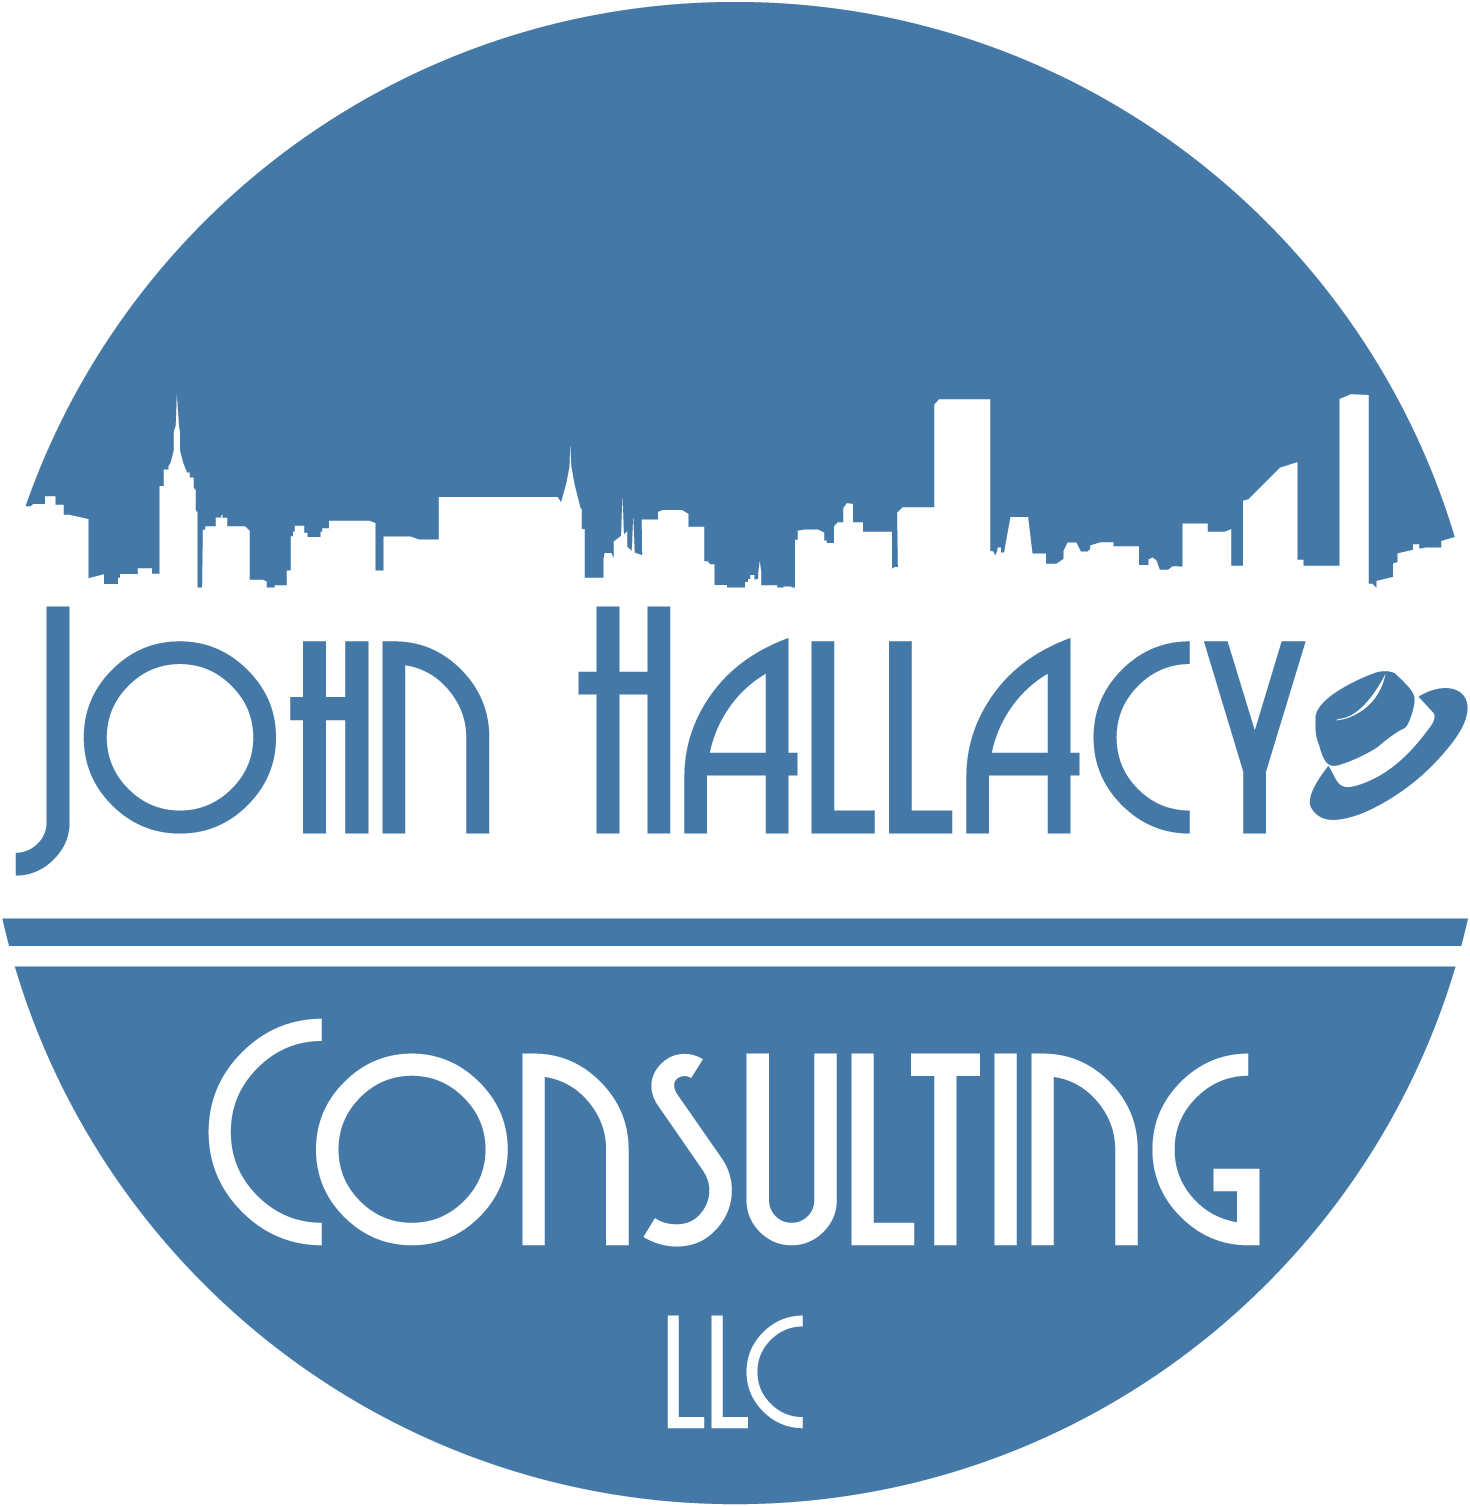 John Hallacy Consulting